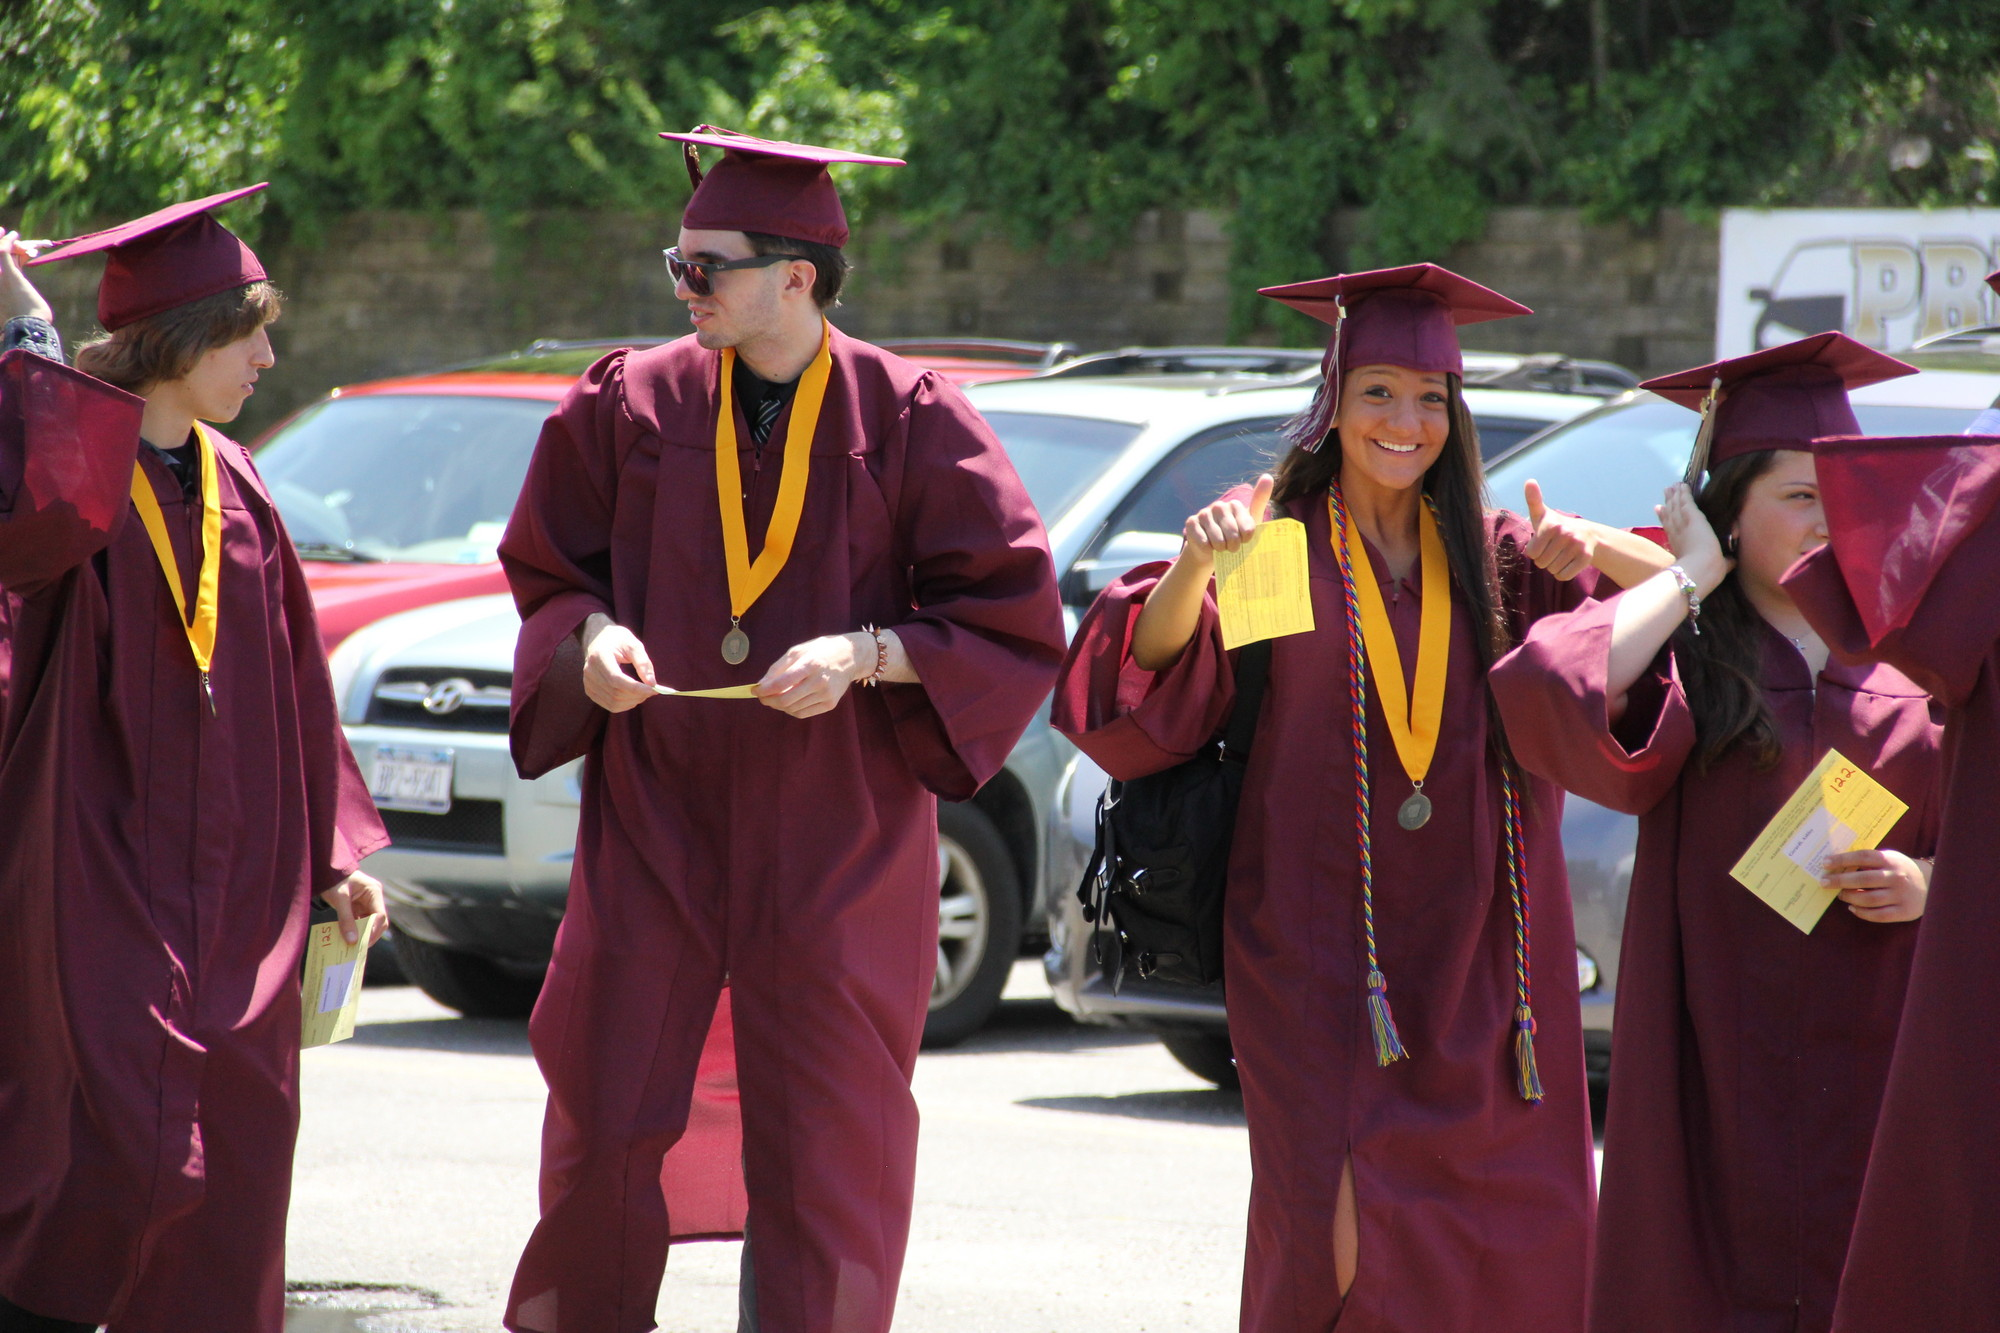 Elyssa Gershman, right, gave an enthusiastic thumbs-up during Mepham's graduation procession.